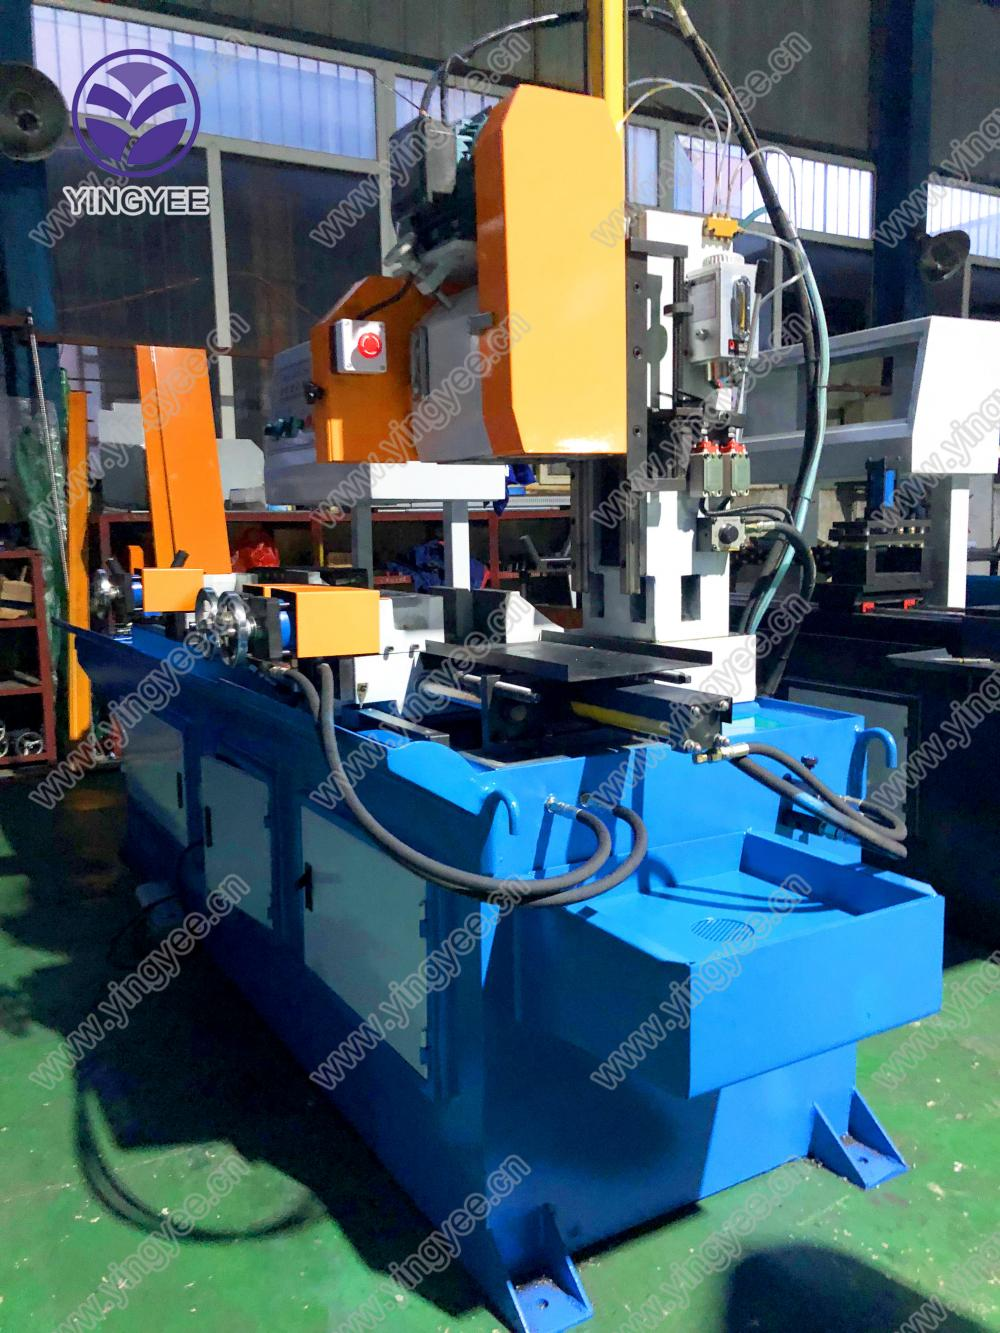 Auto Metal Pipe Cutting Machine From Yingyee004